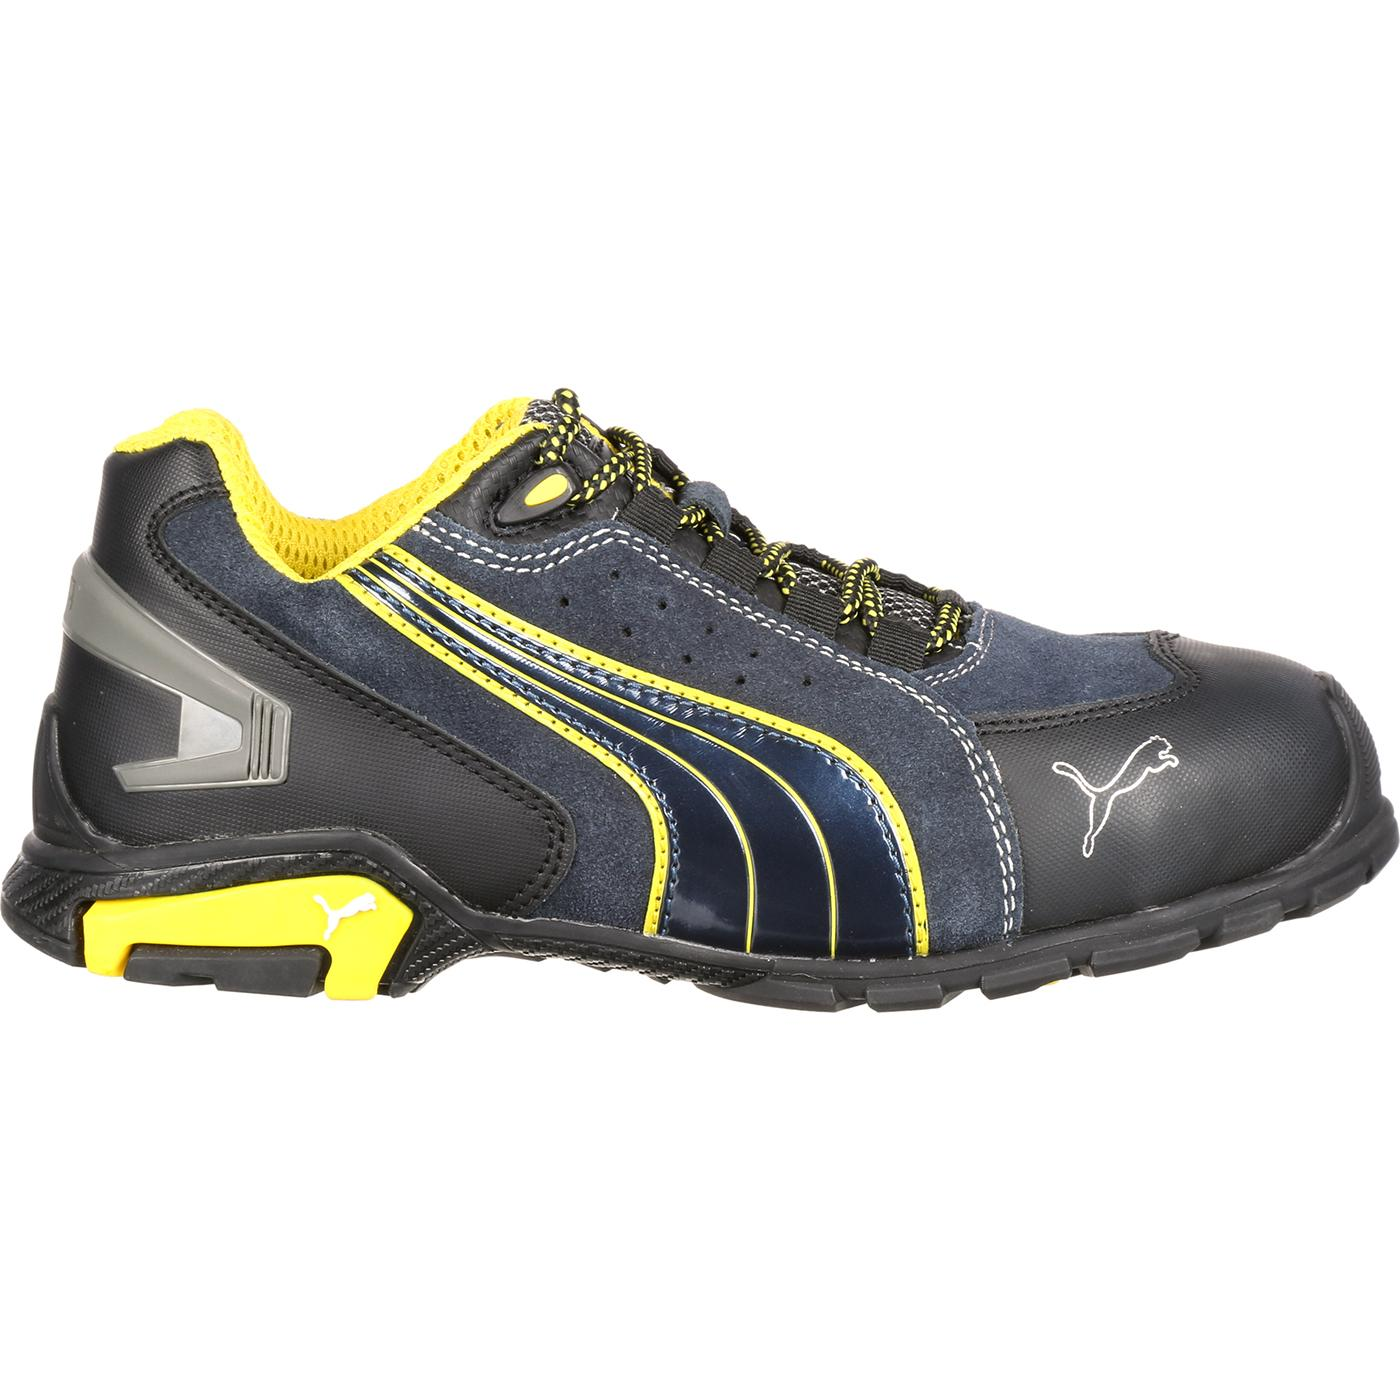 bcde20a32203ee ... Low Aluminum Toe Static-Dissipative Work Shoe